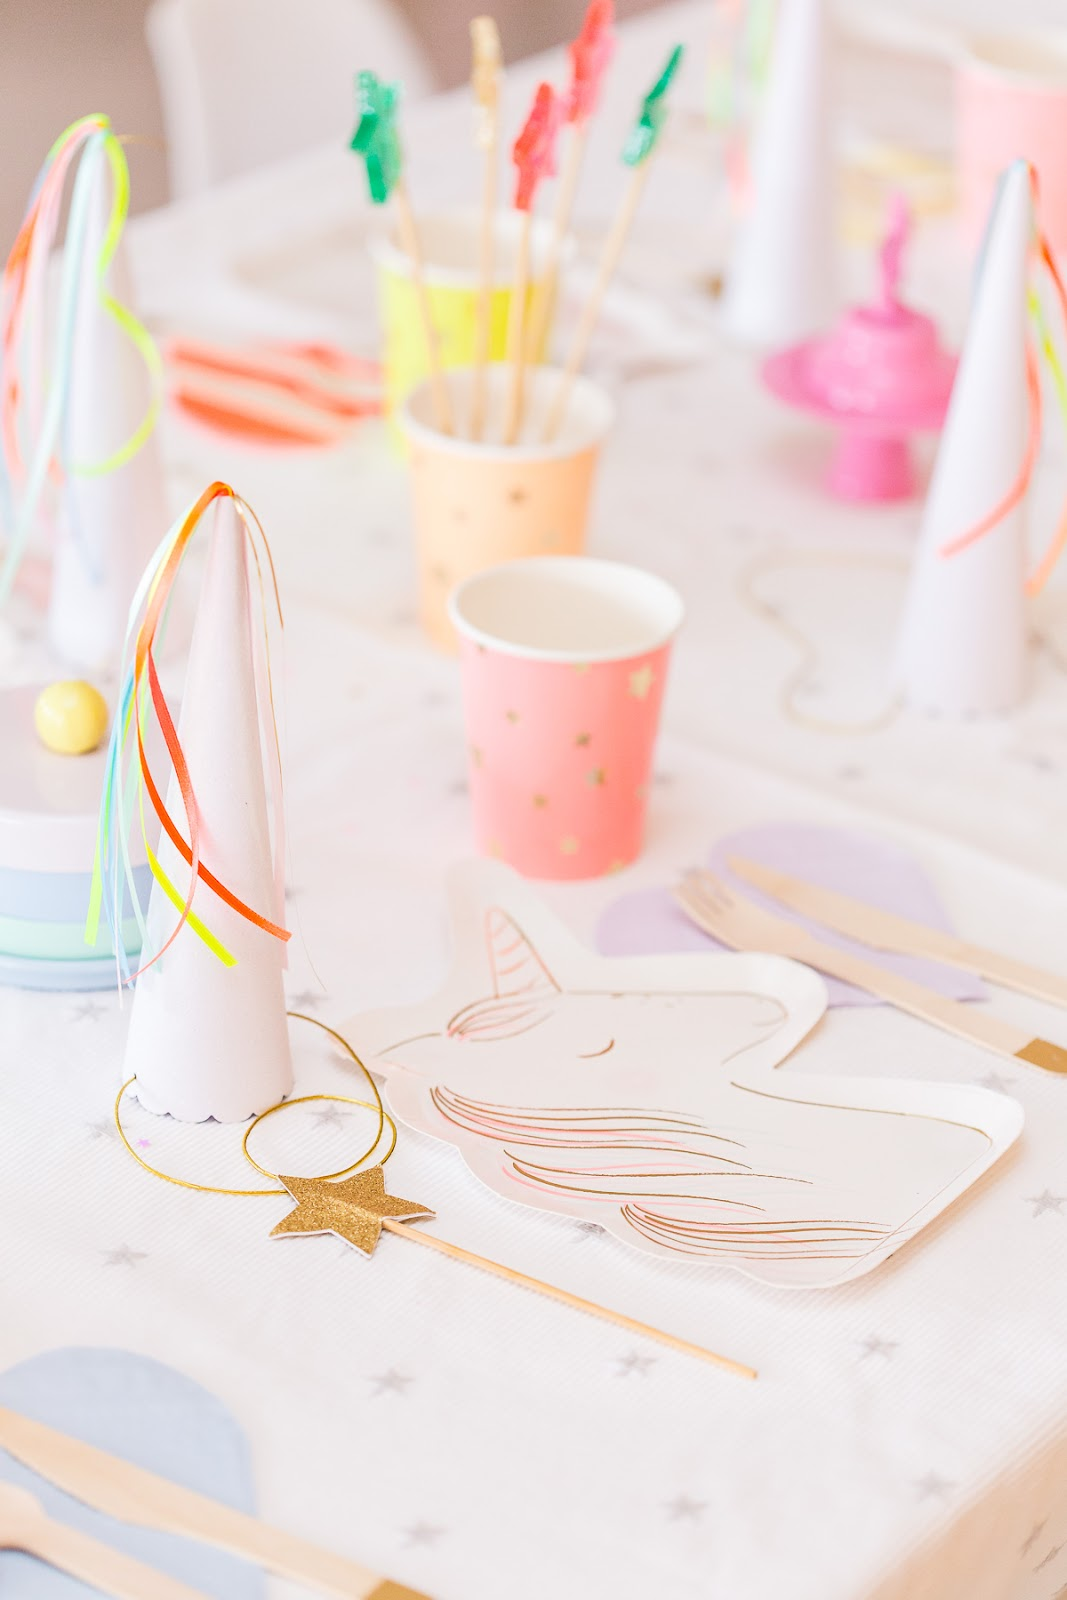 decoração festa infantil unicornio e fadas simples e barata pinterest  - unicorn and fairy minimal clean modern party -  festa colorida moderna minimalista blog do math 2020